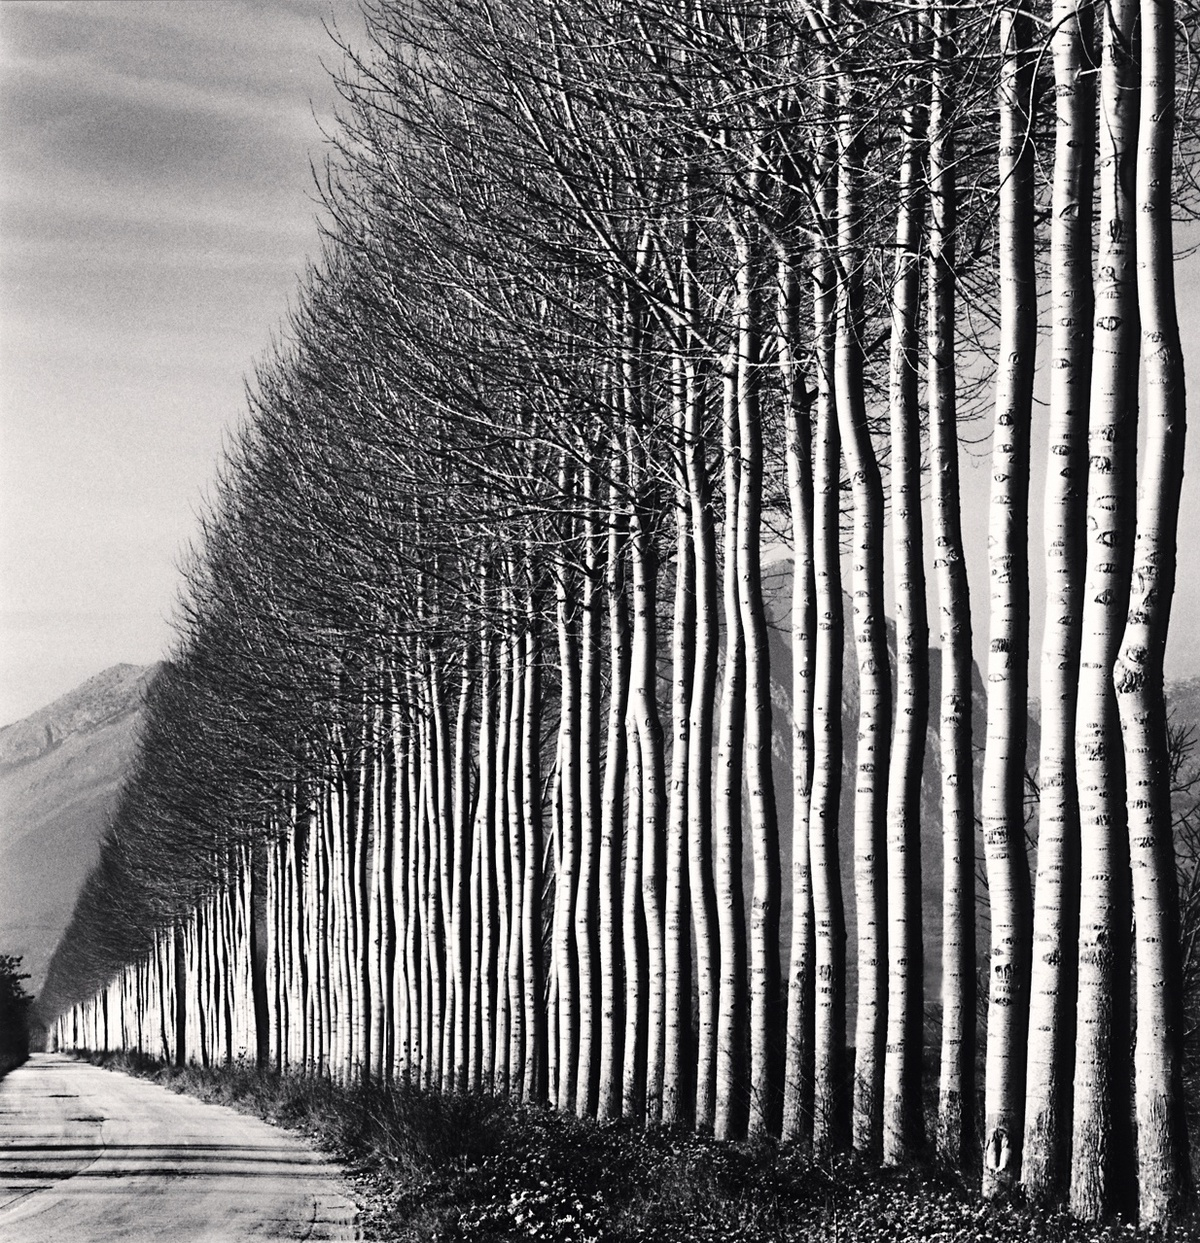 Michael Kenna Poplar Trees, Fucino, Abruzzo, Italy 2016 Sepia Toned Silver Gelatin Print From An Edition Of 25 8 x 8 Inches